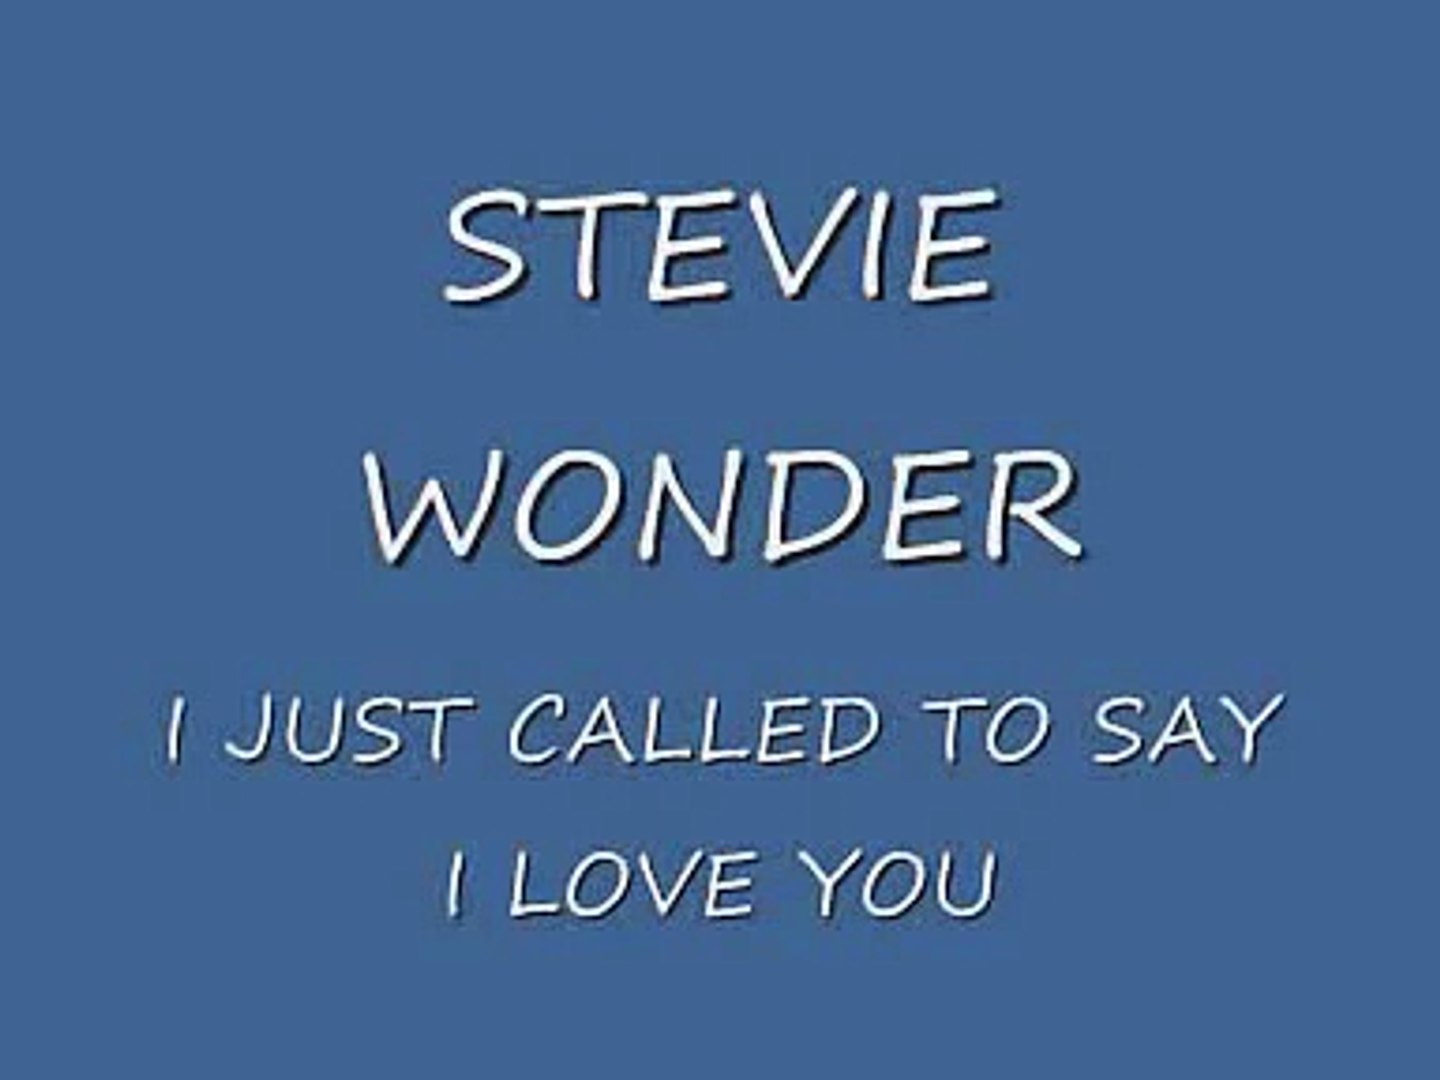 You i say love just to i called